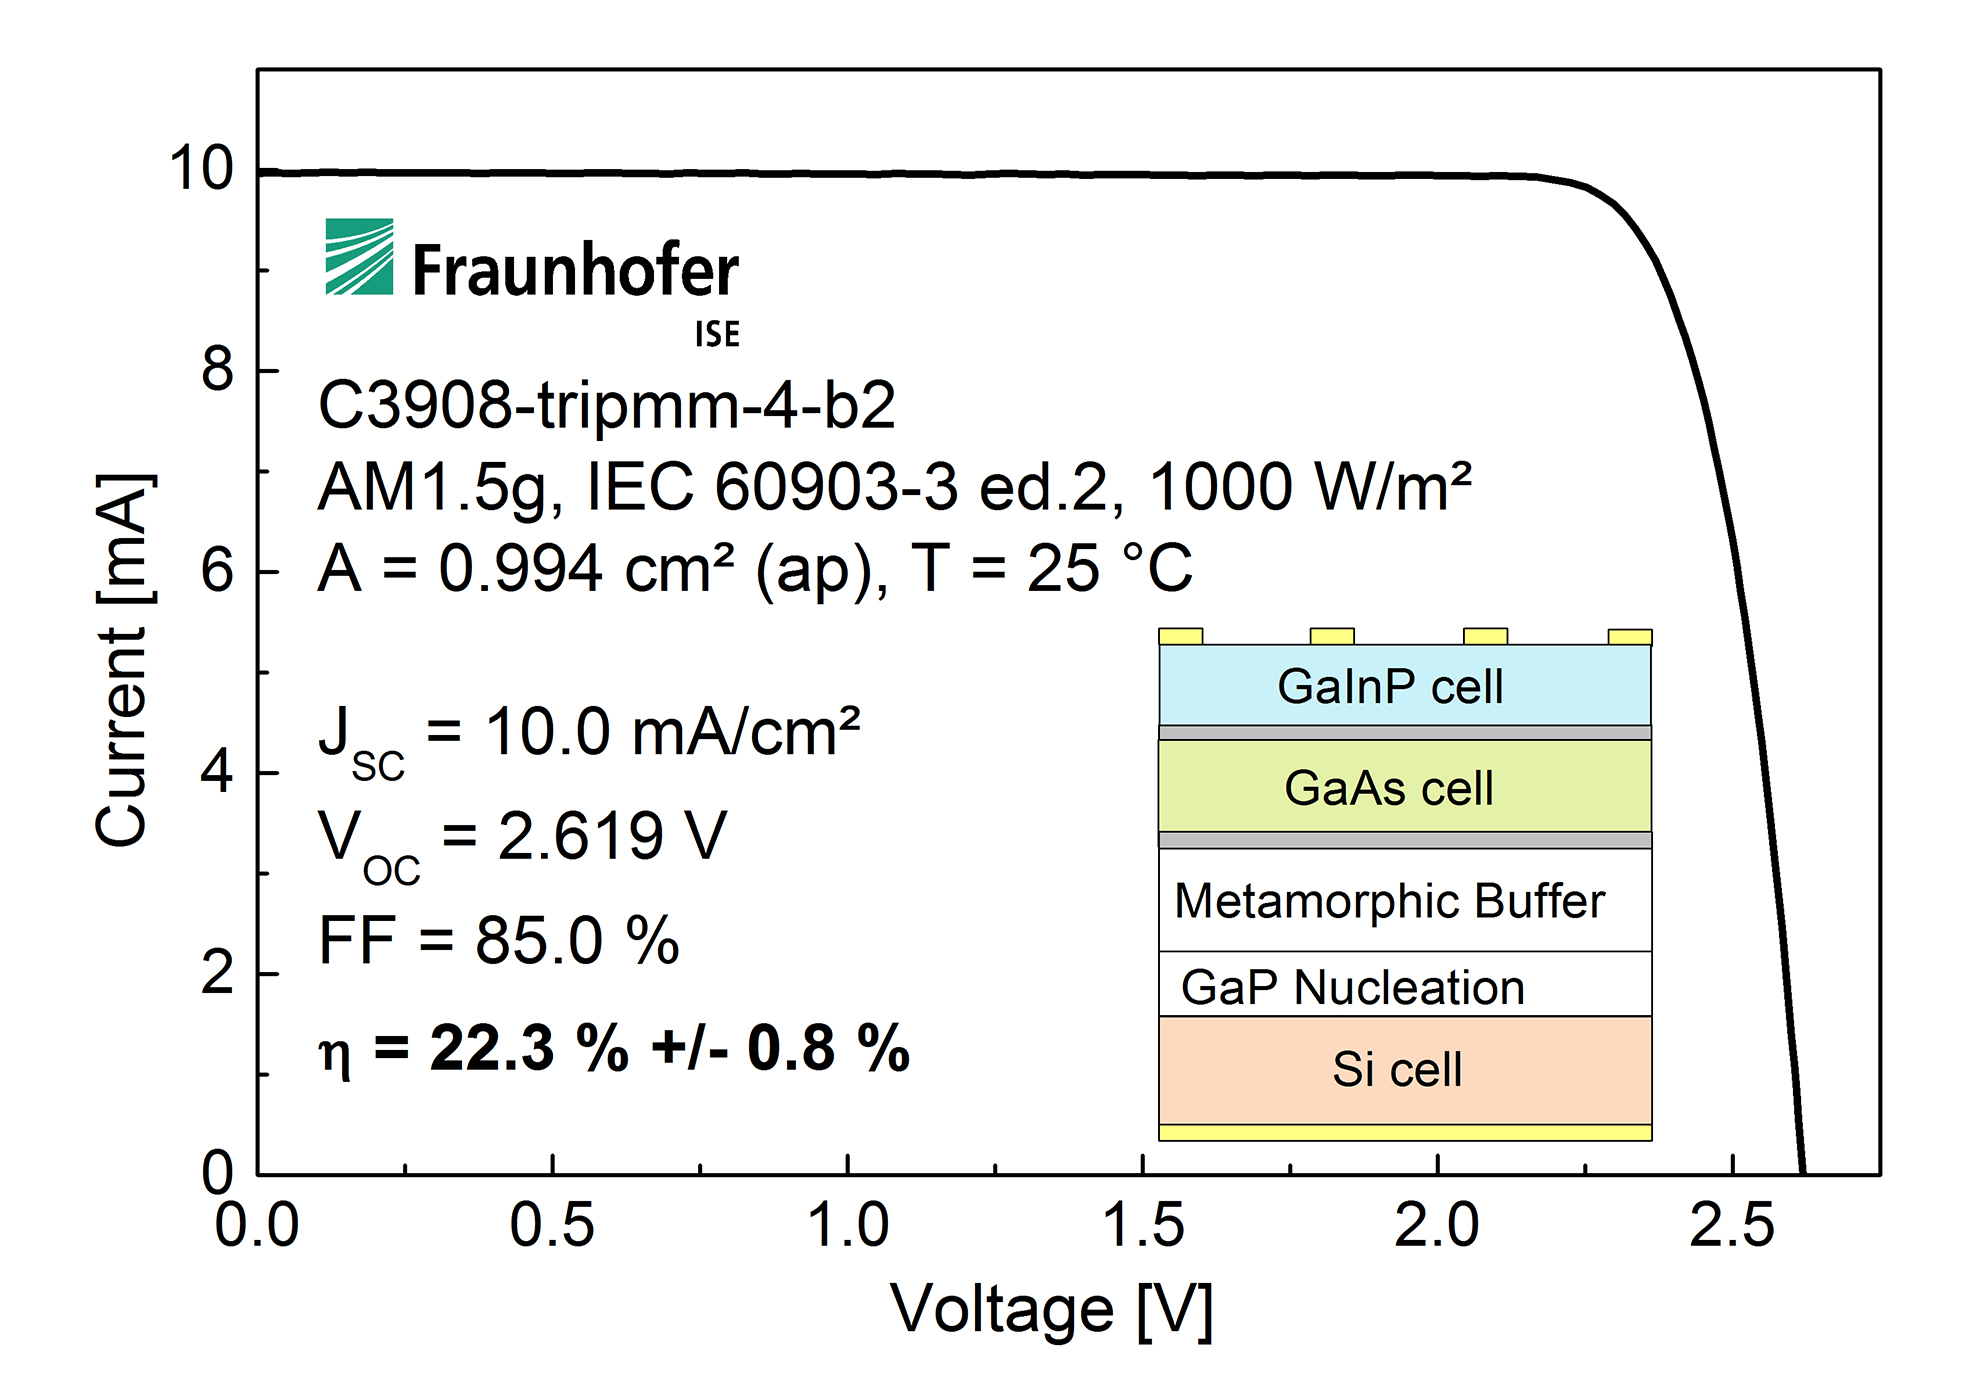 Current-voltage characteristic of the new III-V/Si tandem solar cell with an efficiency of 22.3%. The III-V layers were directly deposited on the silicon bottom cell in an epitaxial process. In order to match the atomic bonding between atoms in the crystal structures, a nucleation layer of gallium-phosphide (GaP) and a so-called metamorphic buffer was introduced between the Si and GaAs. Optimizing these transition layers was a main challenge in this project.Image: Fraunhofer ISE